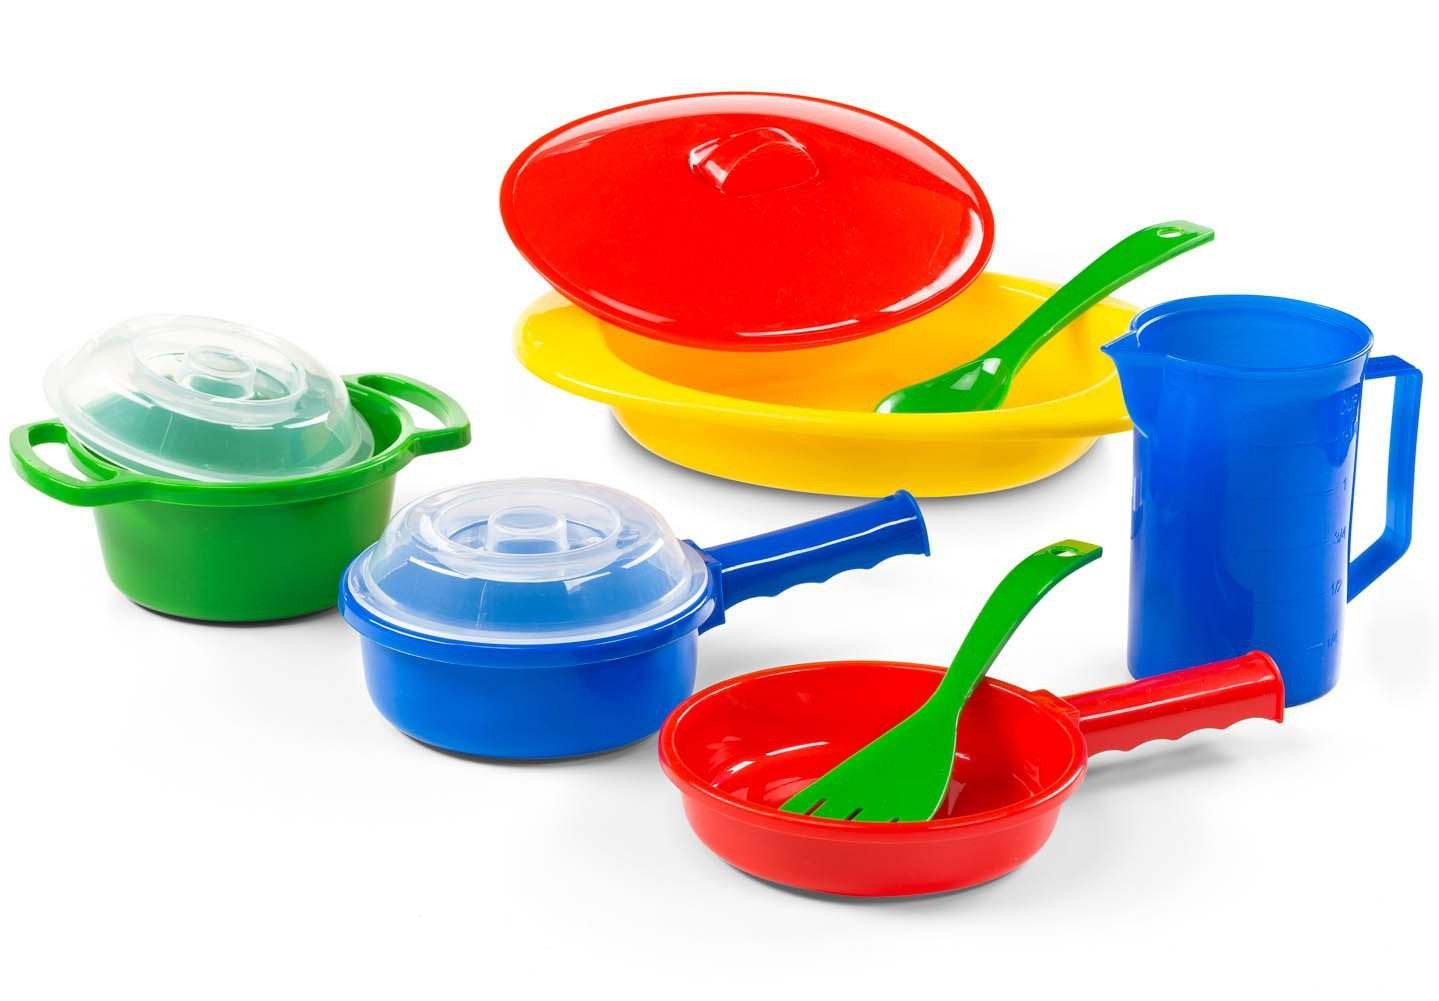 Kidzlane Toy Pots and Pans Kitchen Accessories, Durable and Safe Pretend Play Cookware for Toddler Kids by Kidzlane